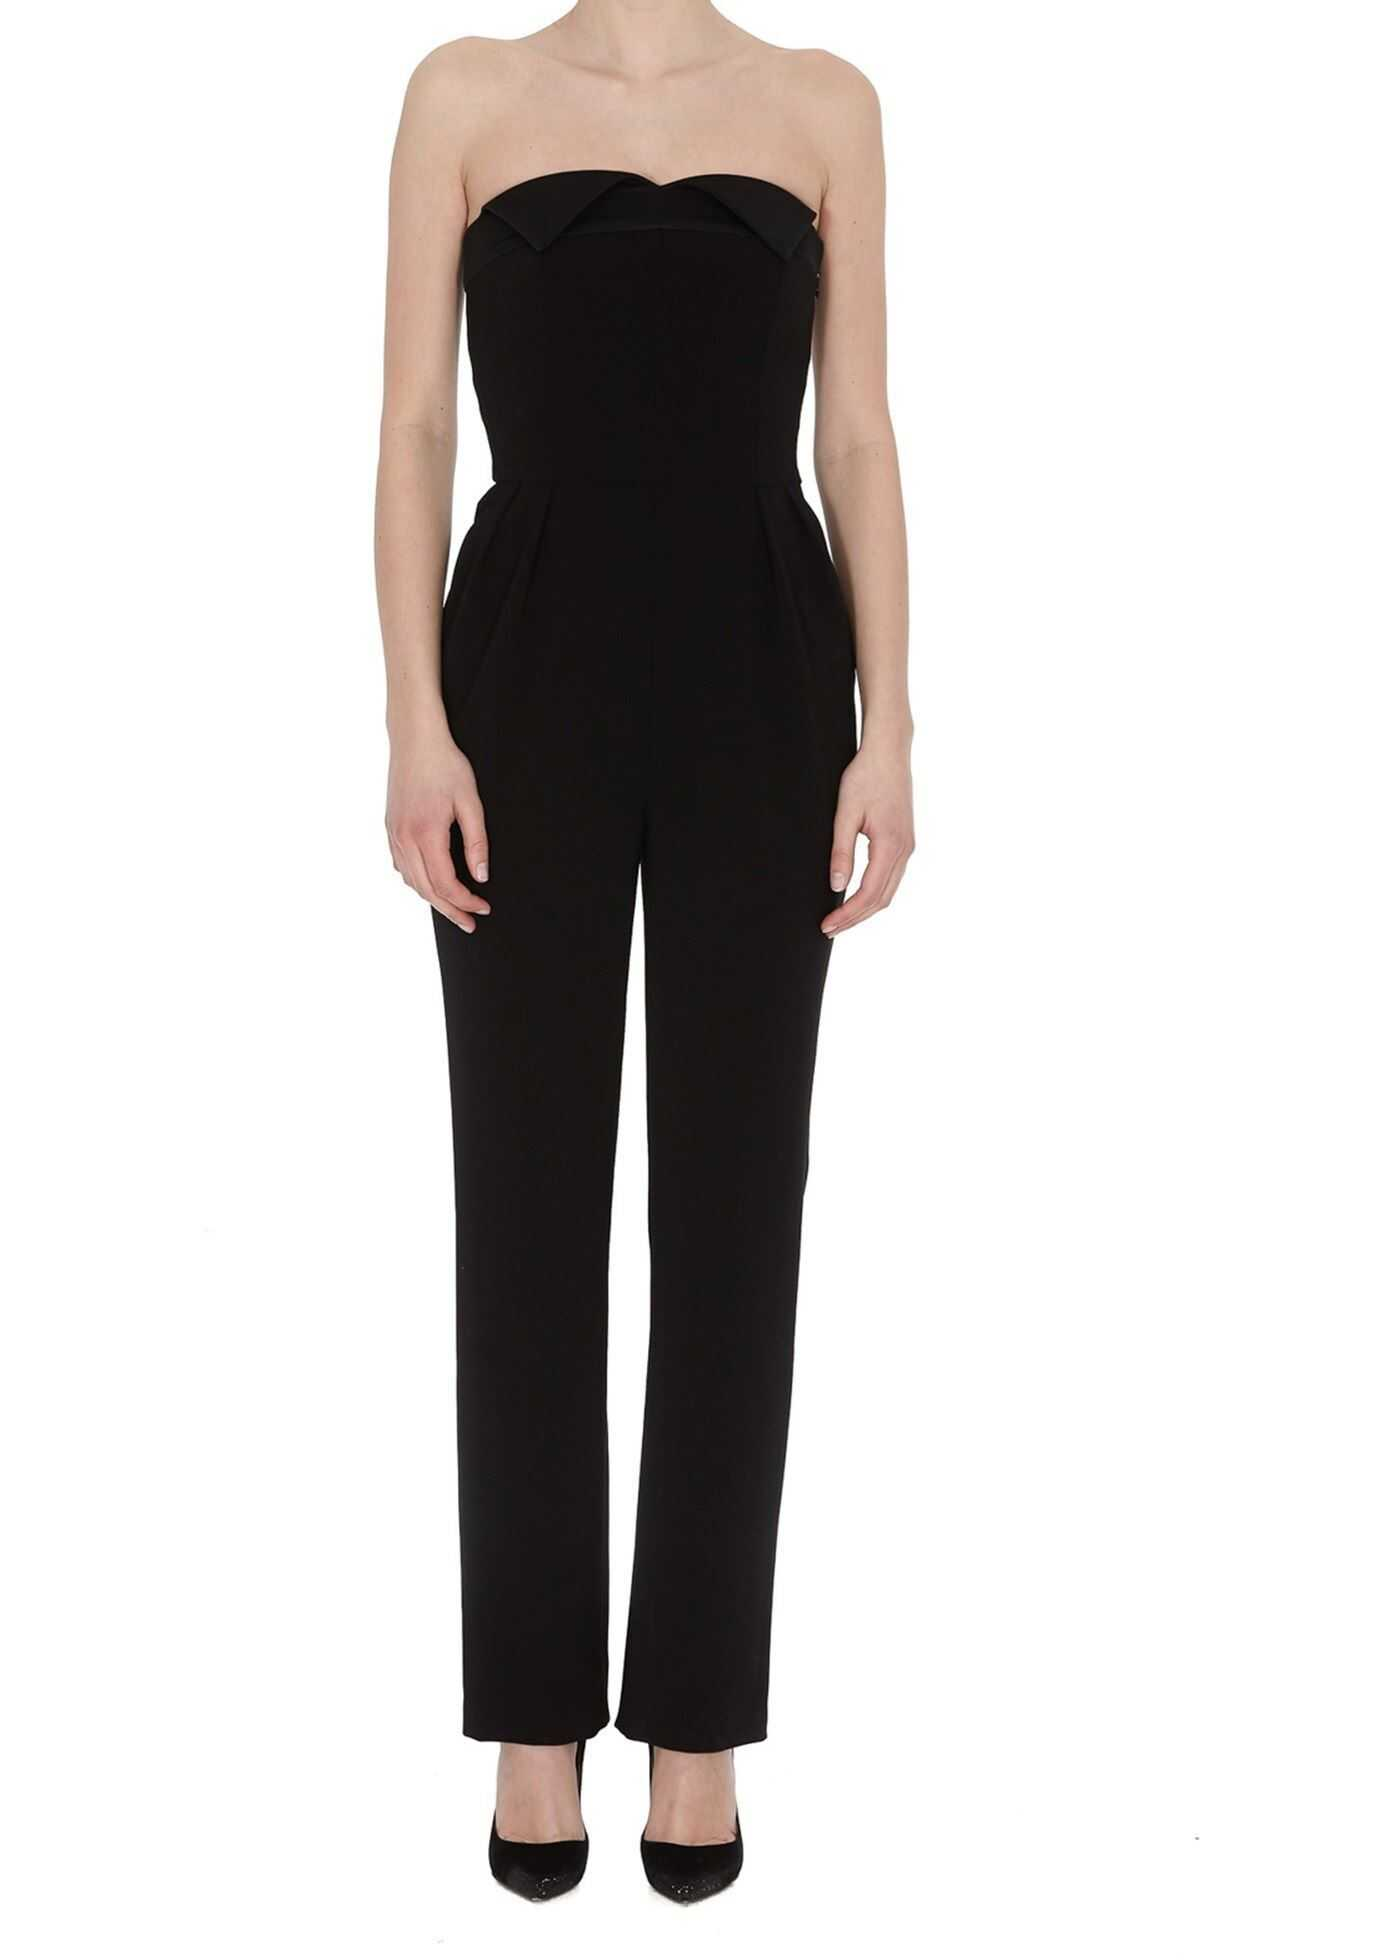 Moschino Sweetheart Neckline Jumpsuit In Black Black